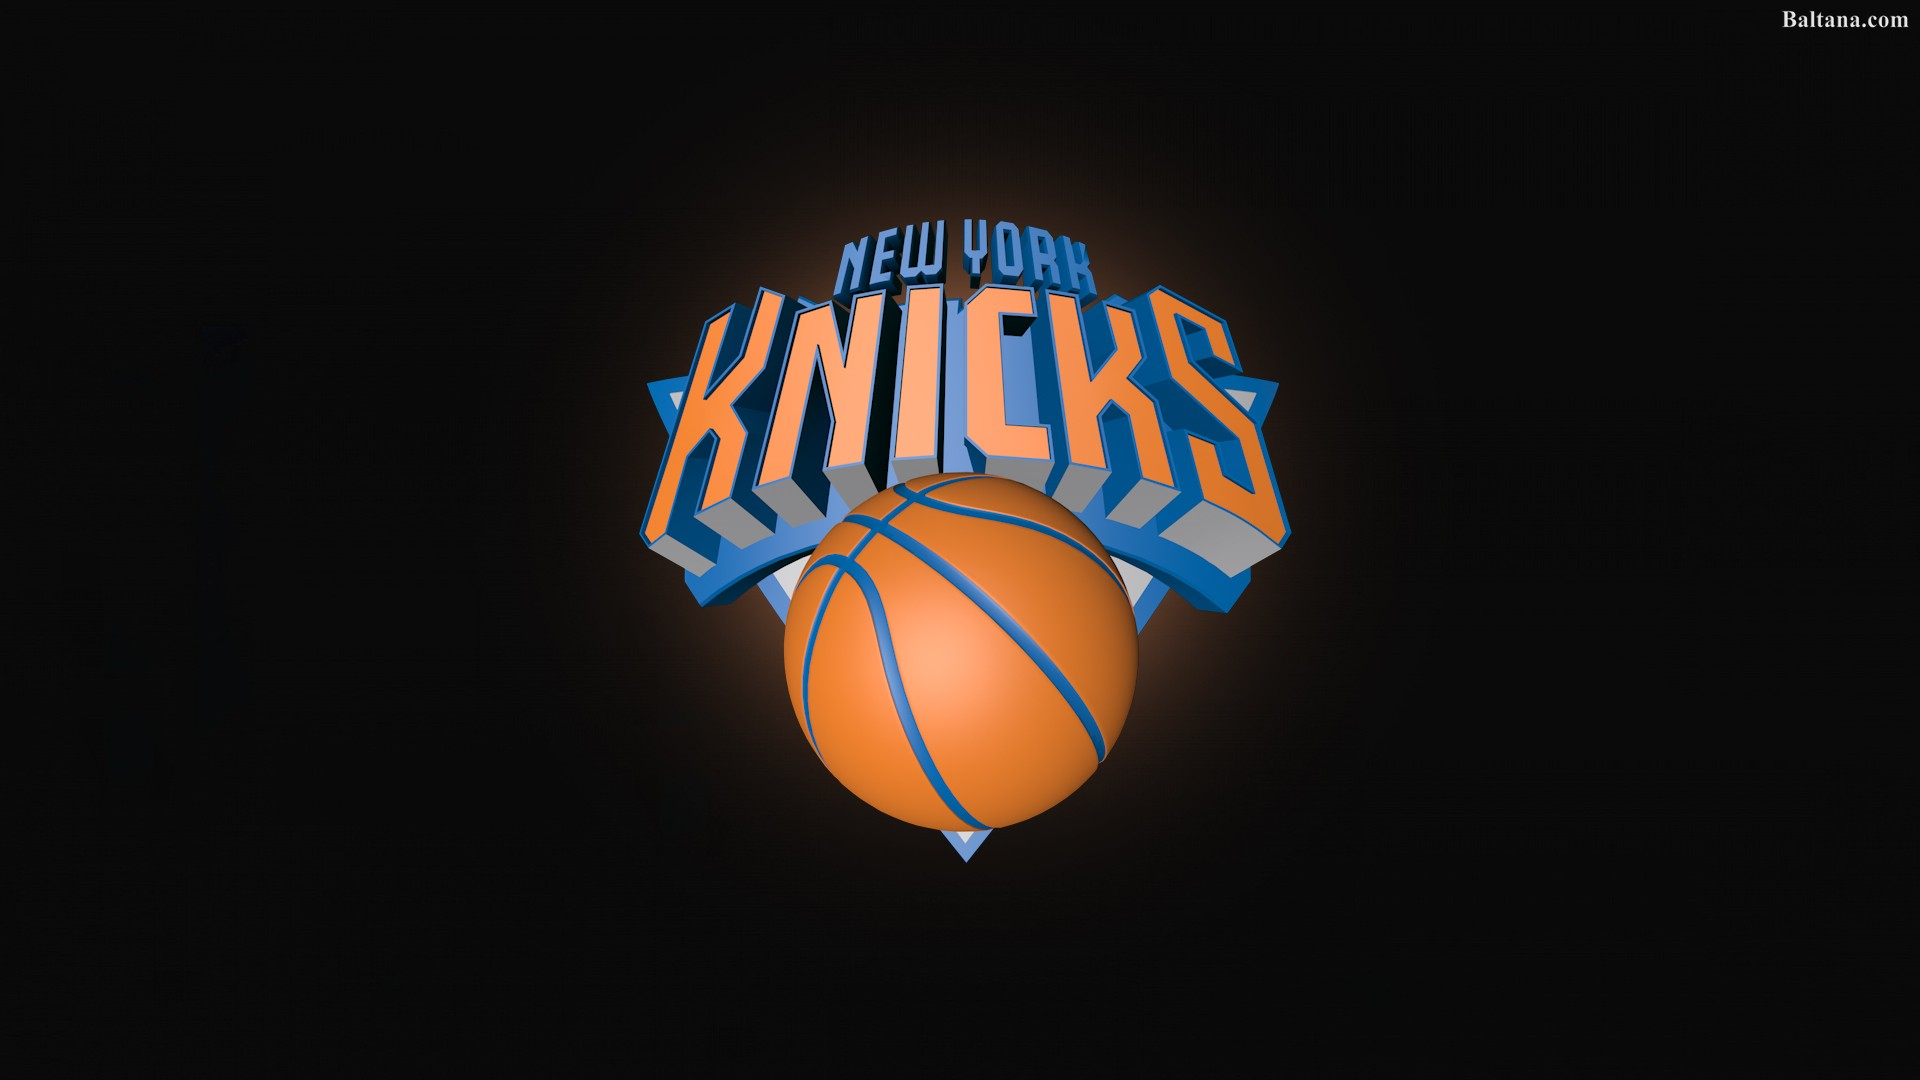 1920x1080 - New York Knicks Wallpapers 21